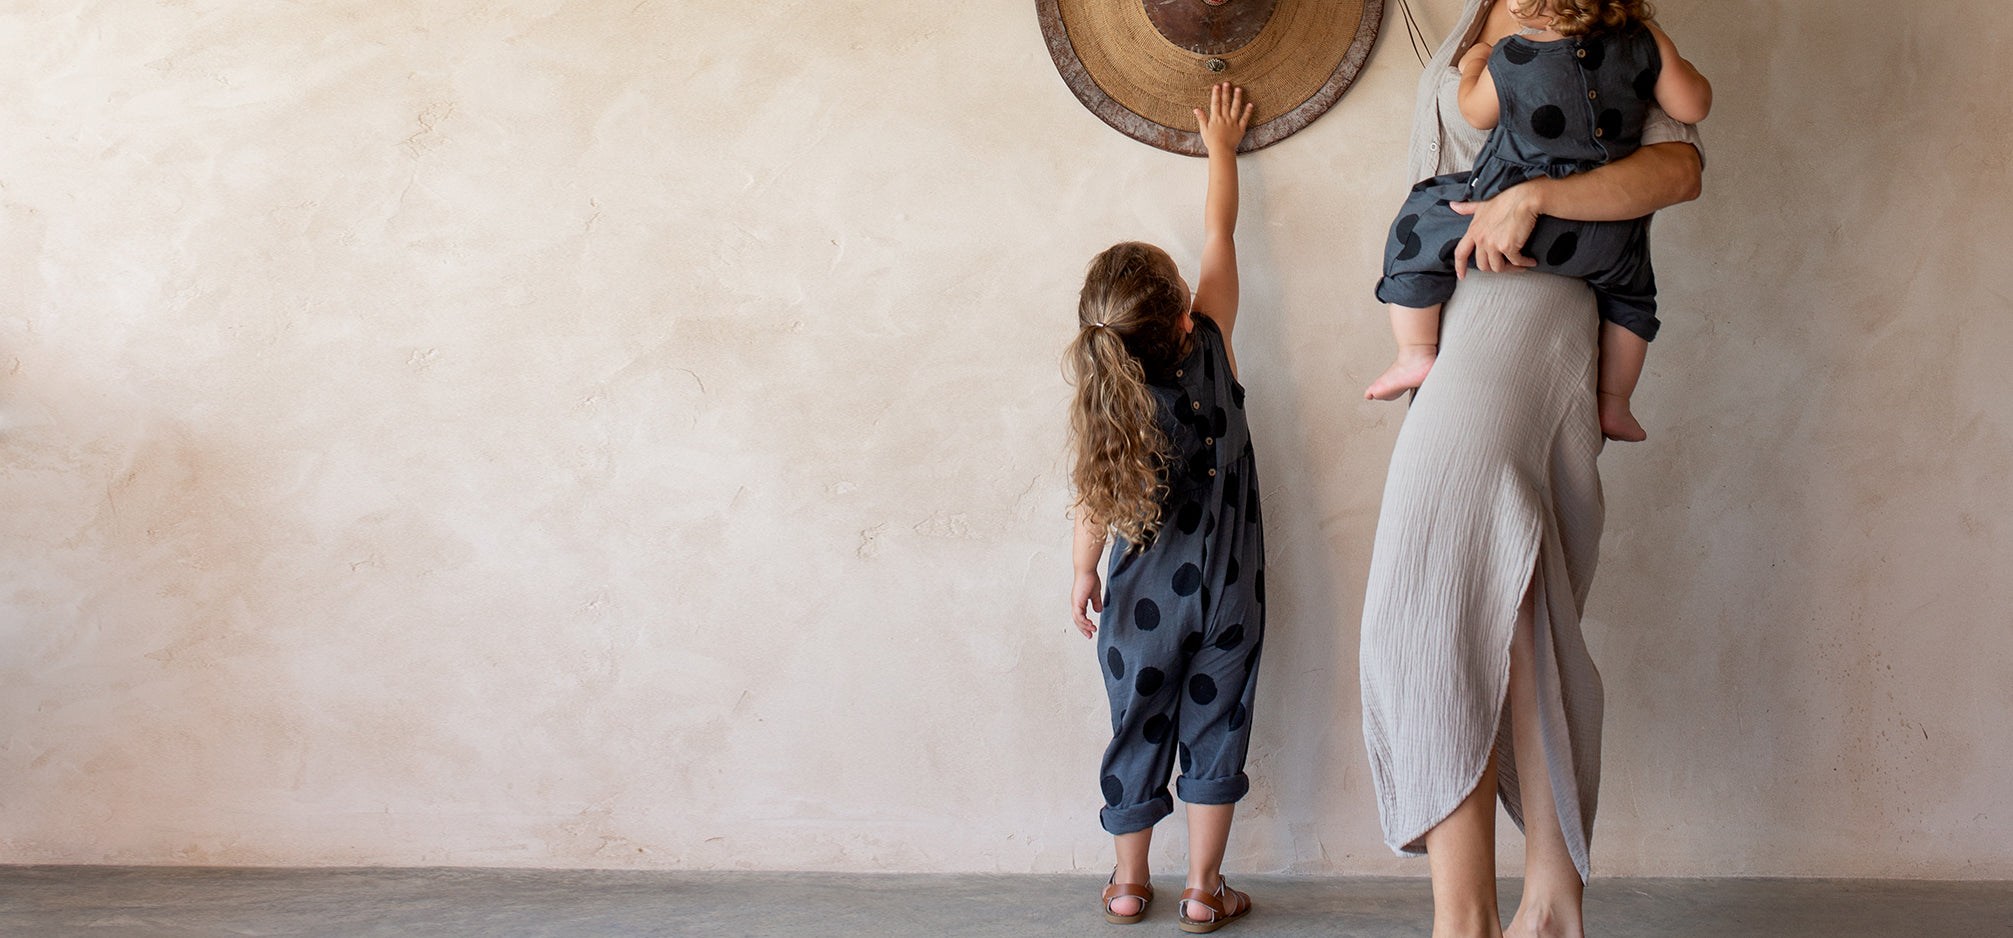 A mother holding a baby next to a girl reaching for some hats hanging on a wall.